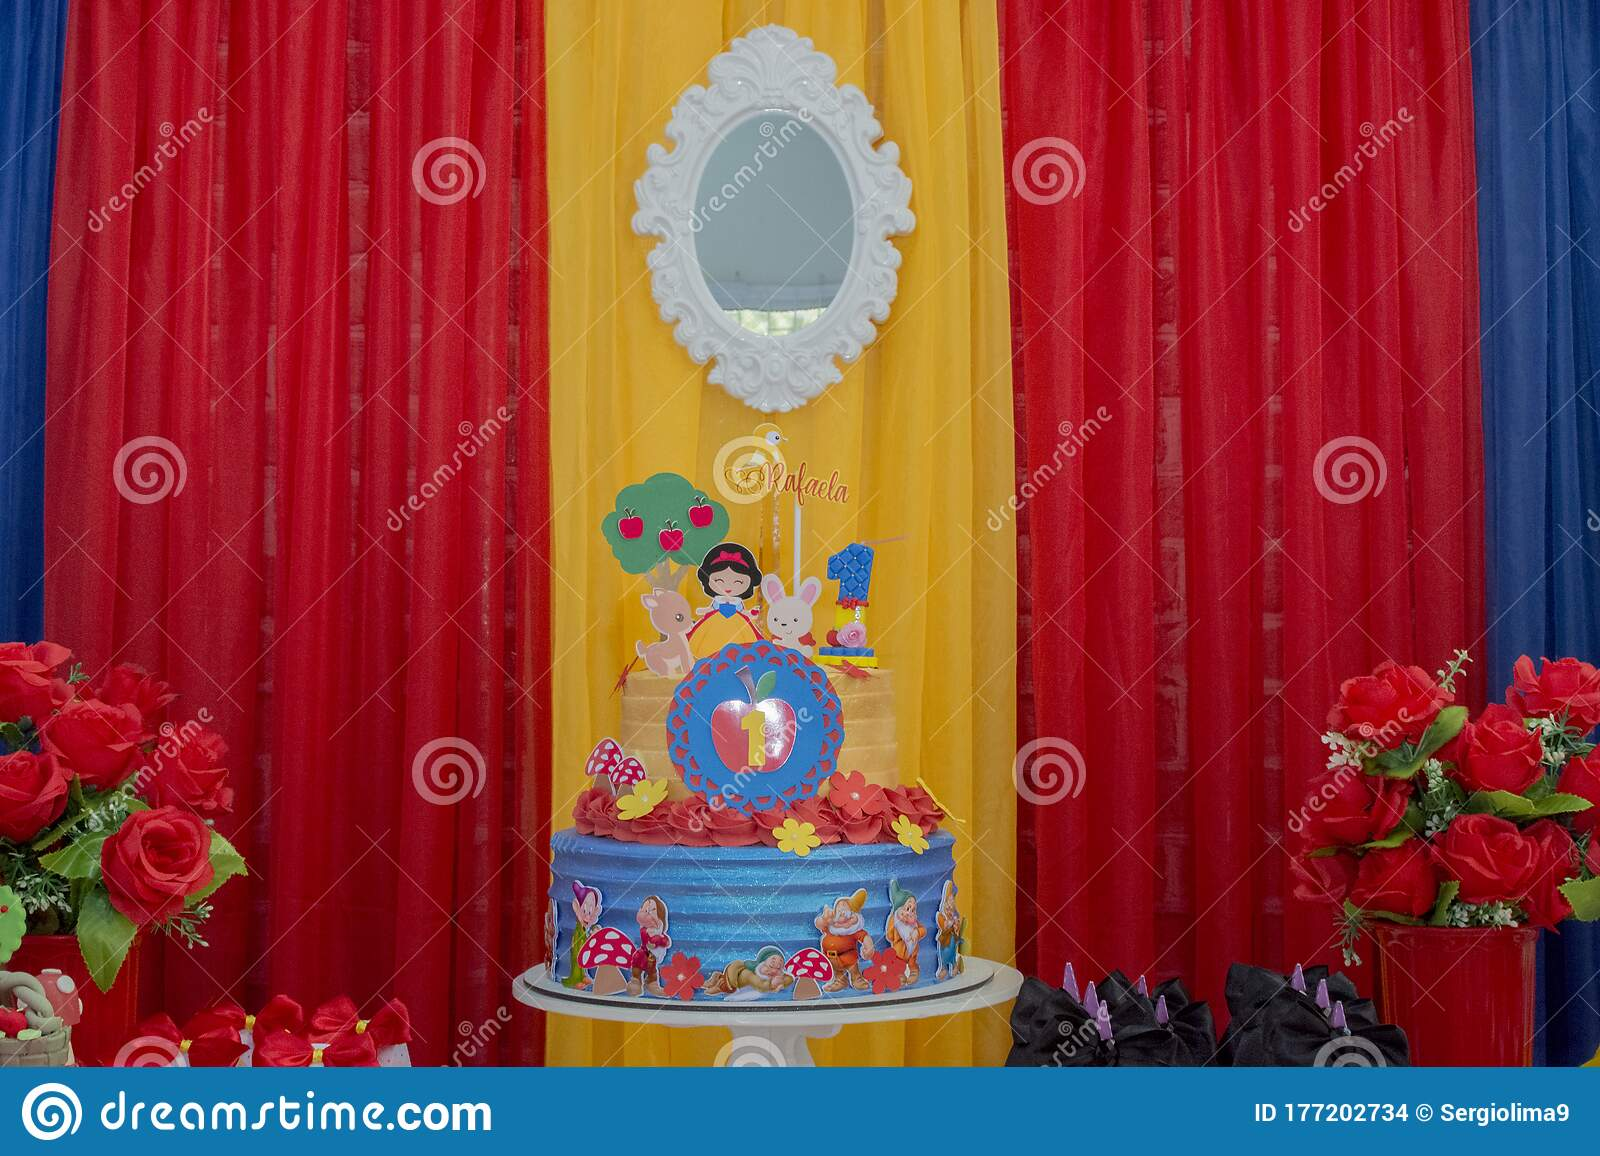 Colorful Birthday Party Decoration Theme Of Snow White And The Seven Dwarfs Editorial Stock Image Image Of Birthday Decoration 177202734